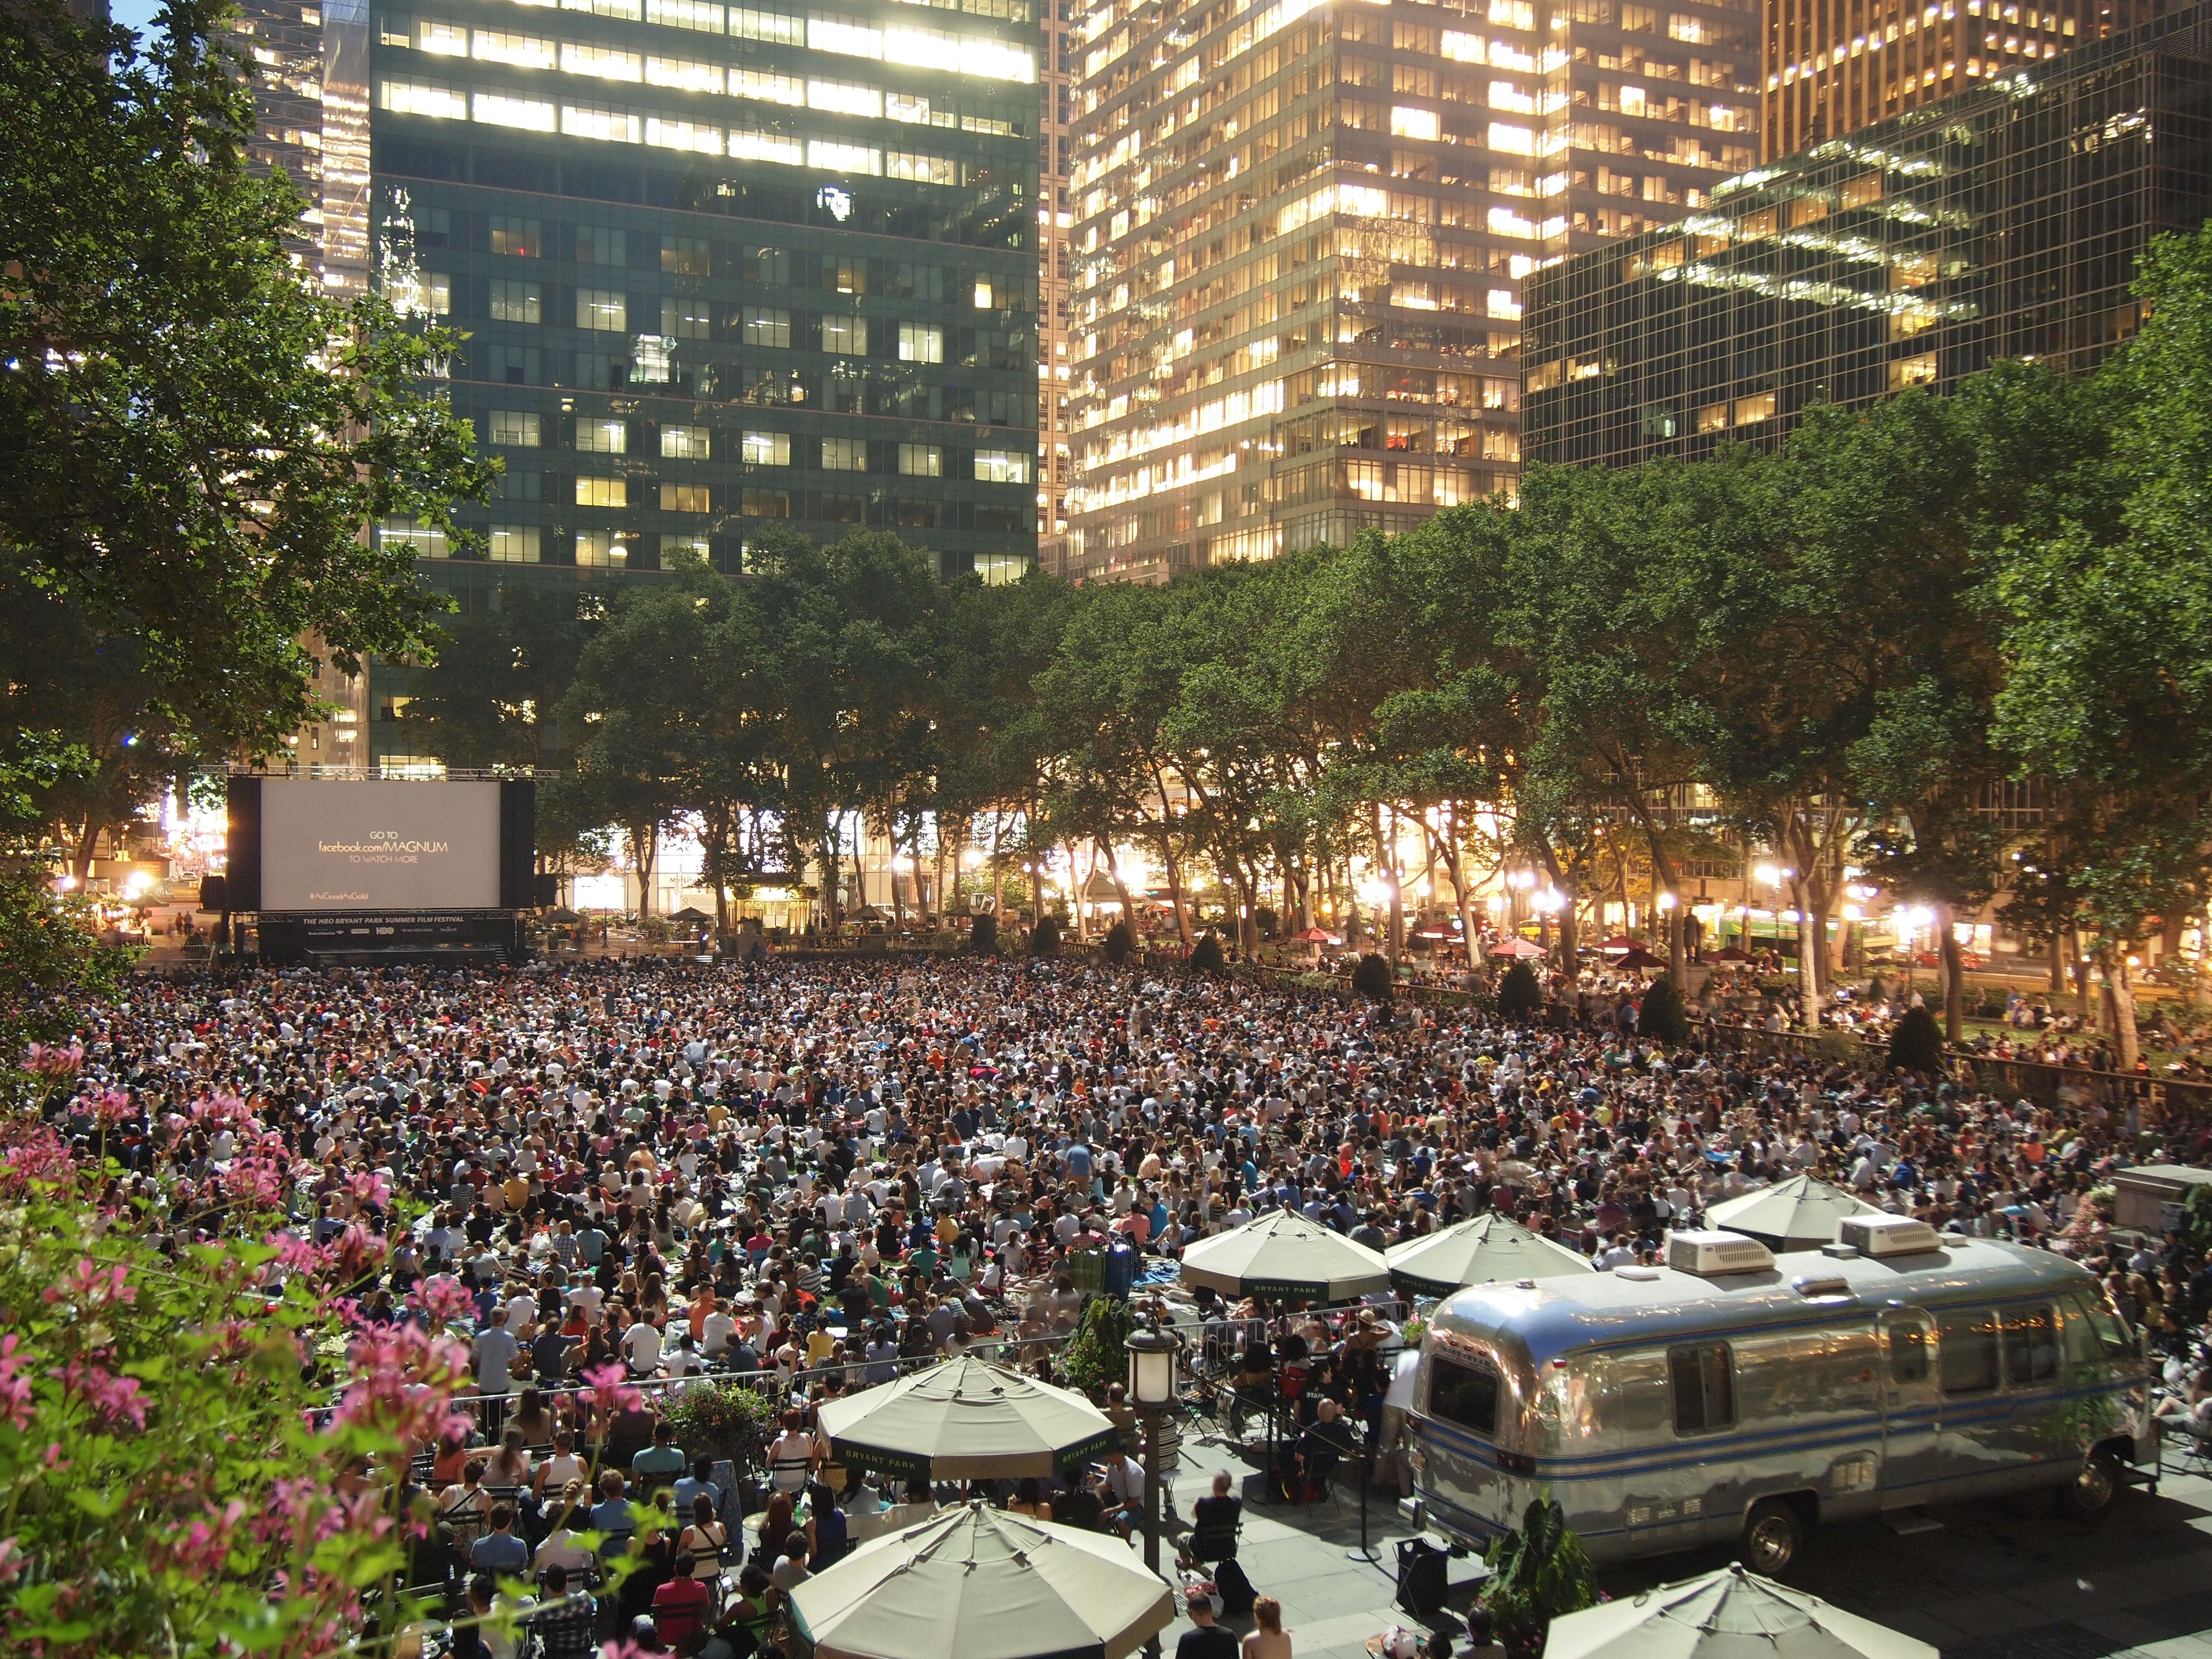 HBO-Bryant-Park-Summer-Film-Festival-present-by-Bank-of-America-Photo-by-Bryant-Park-Corporation-1-.JPG